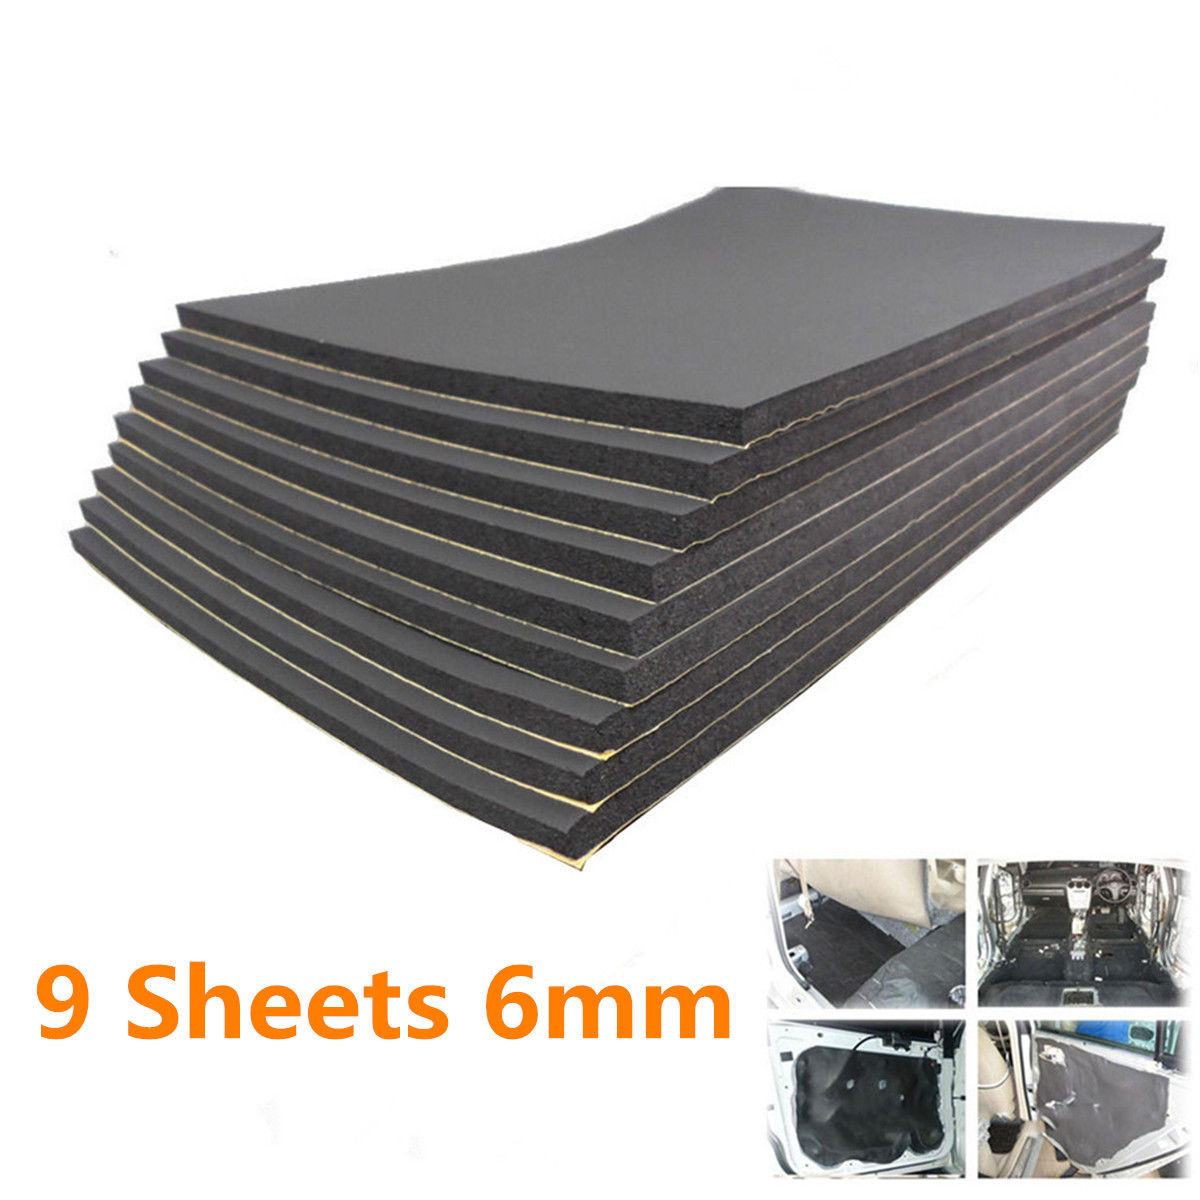 9pcs Car Sound Proof Insulation 30x50cm*6mm High Quality Rubber Plastic Auto Van Proofing Deadening Foam